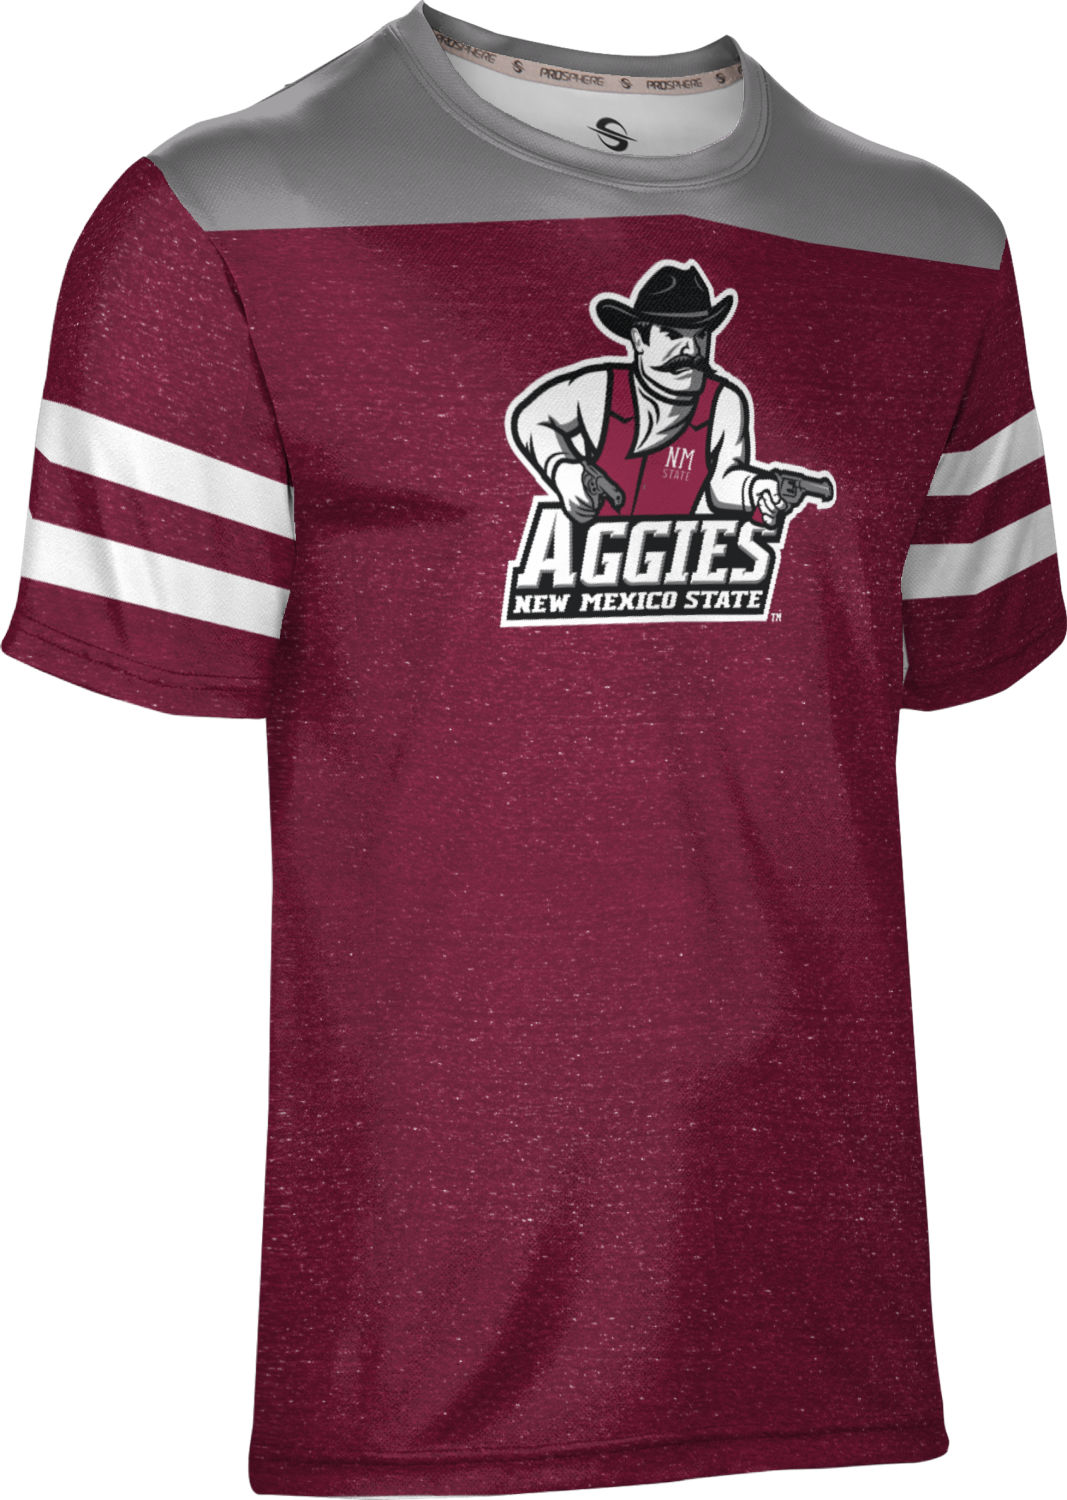 End Zone ProSphere New Mexico State University Girls Performance T-Shirt